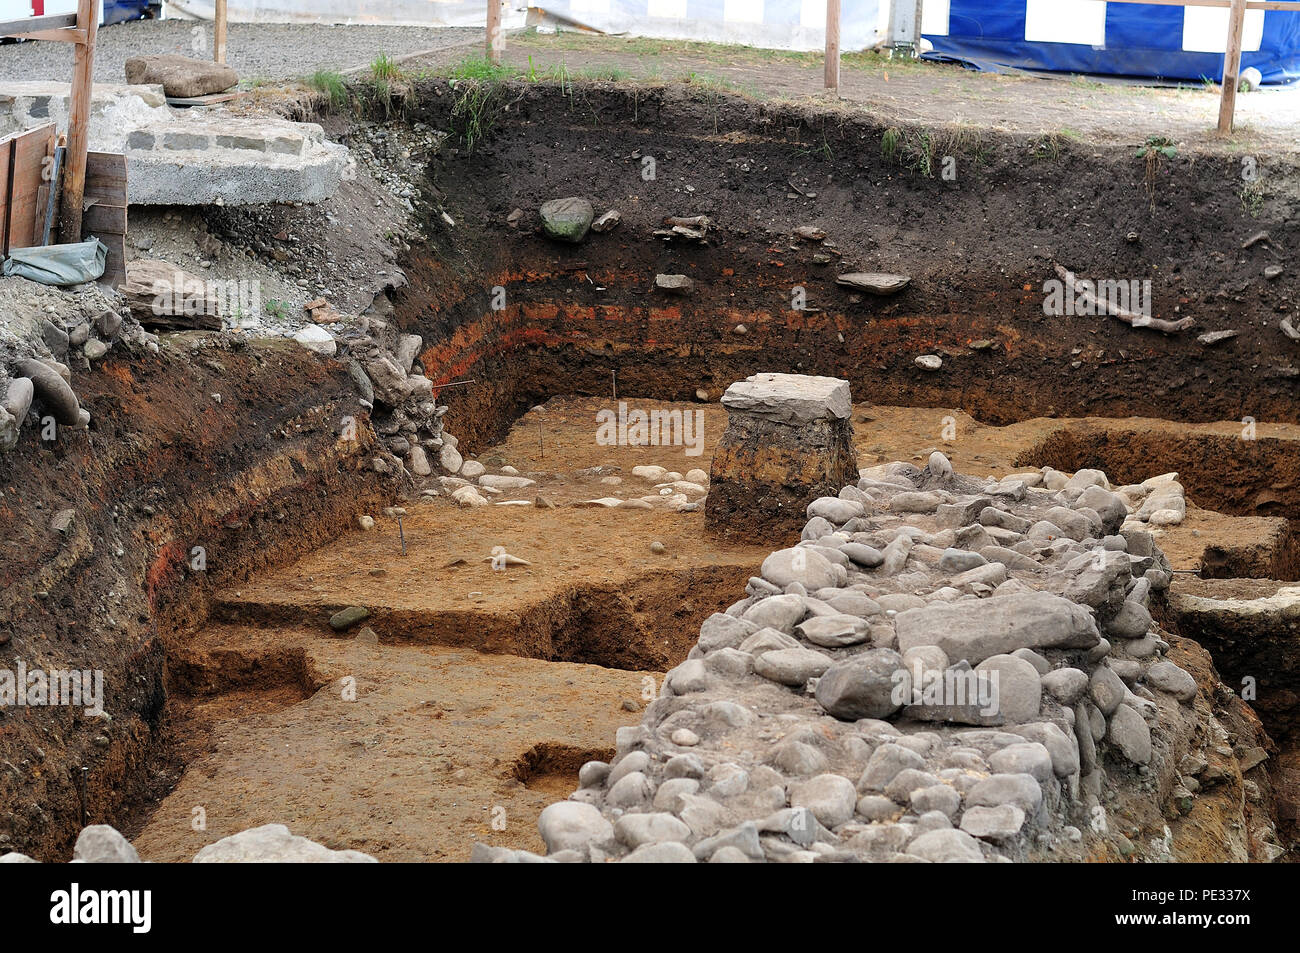 excavation of roman ruins in public archaeological park in Kempten, Germany Stock Photo